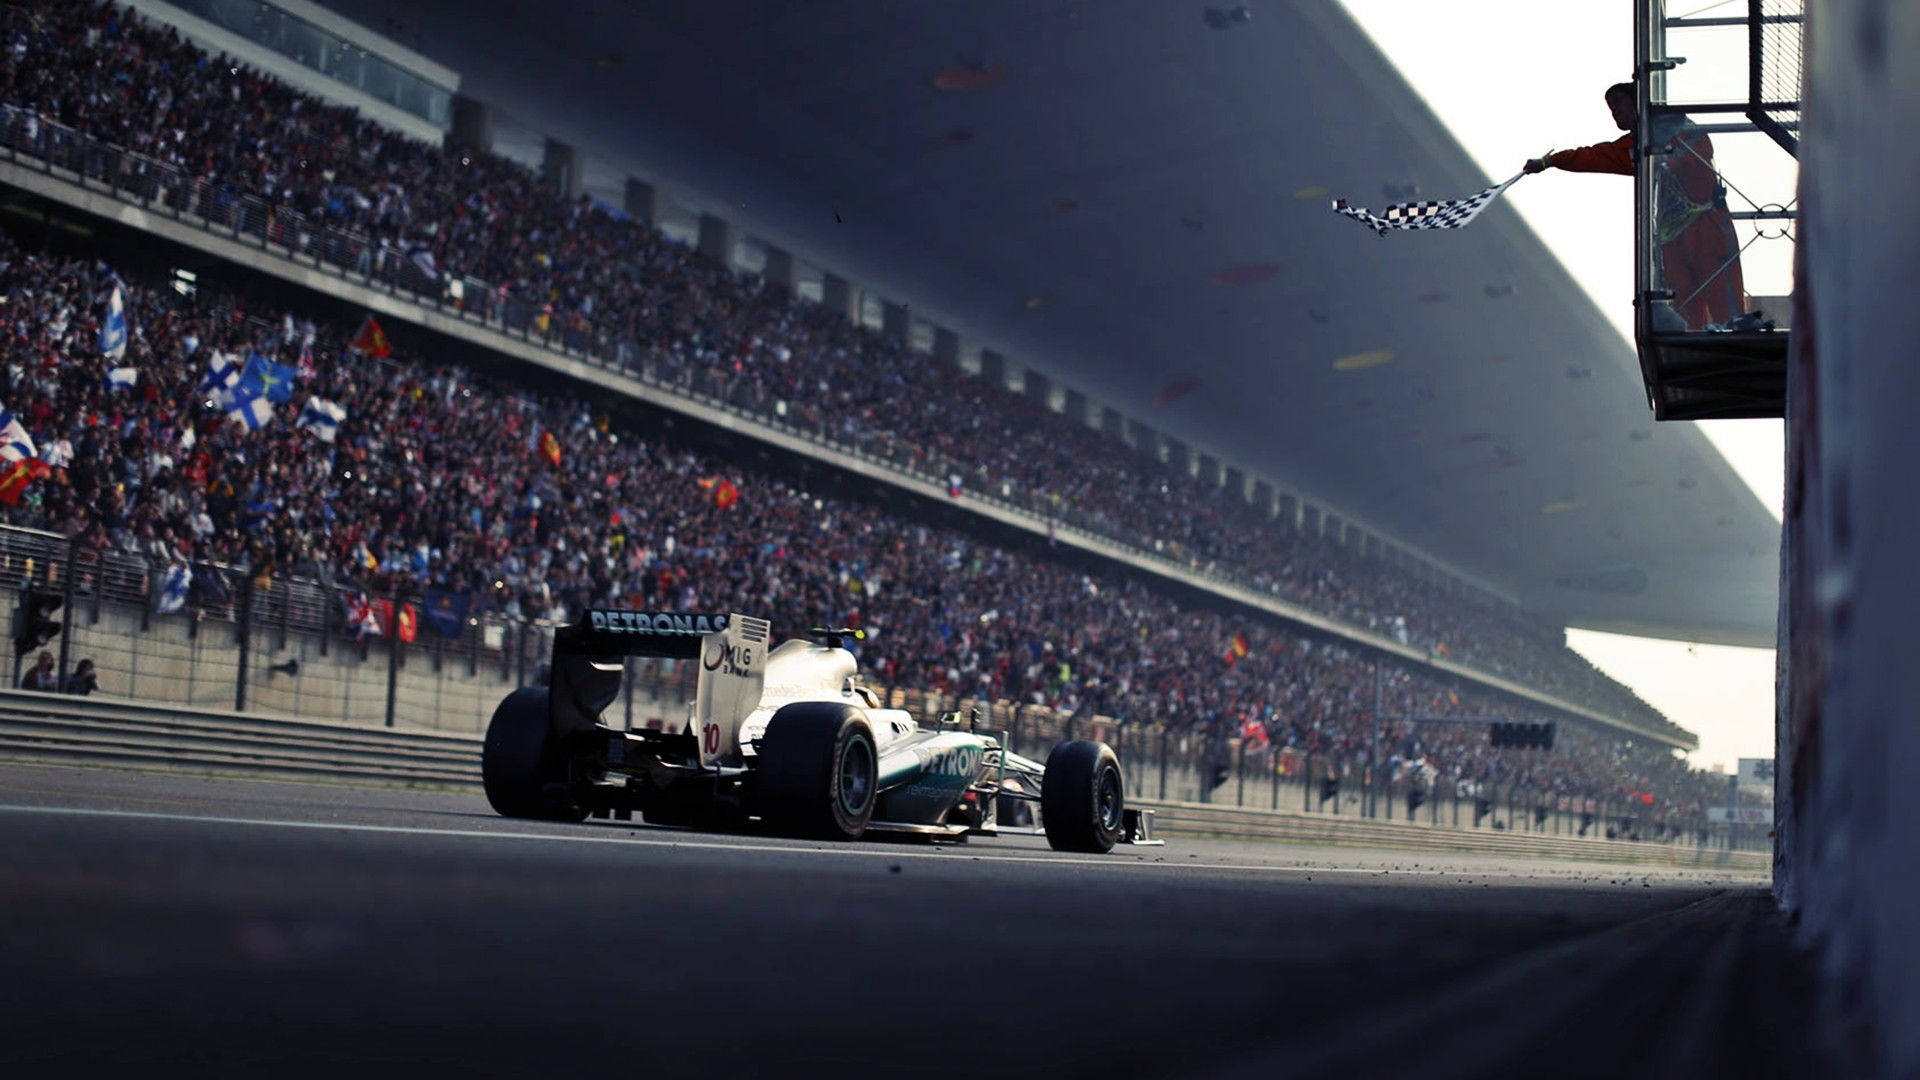 Mercedes f1 hdwallpaper 1